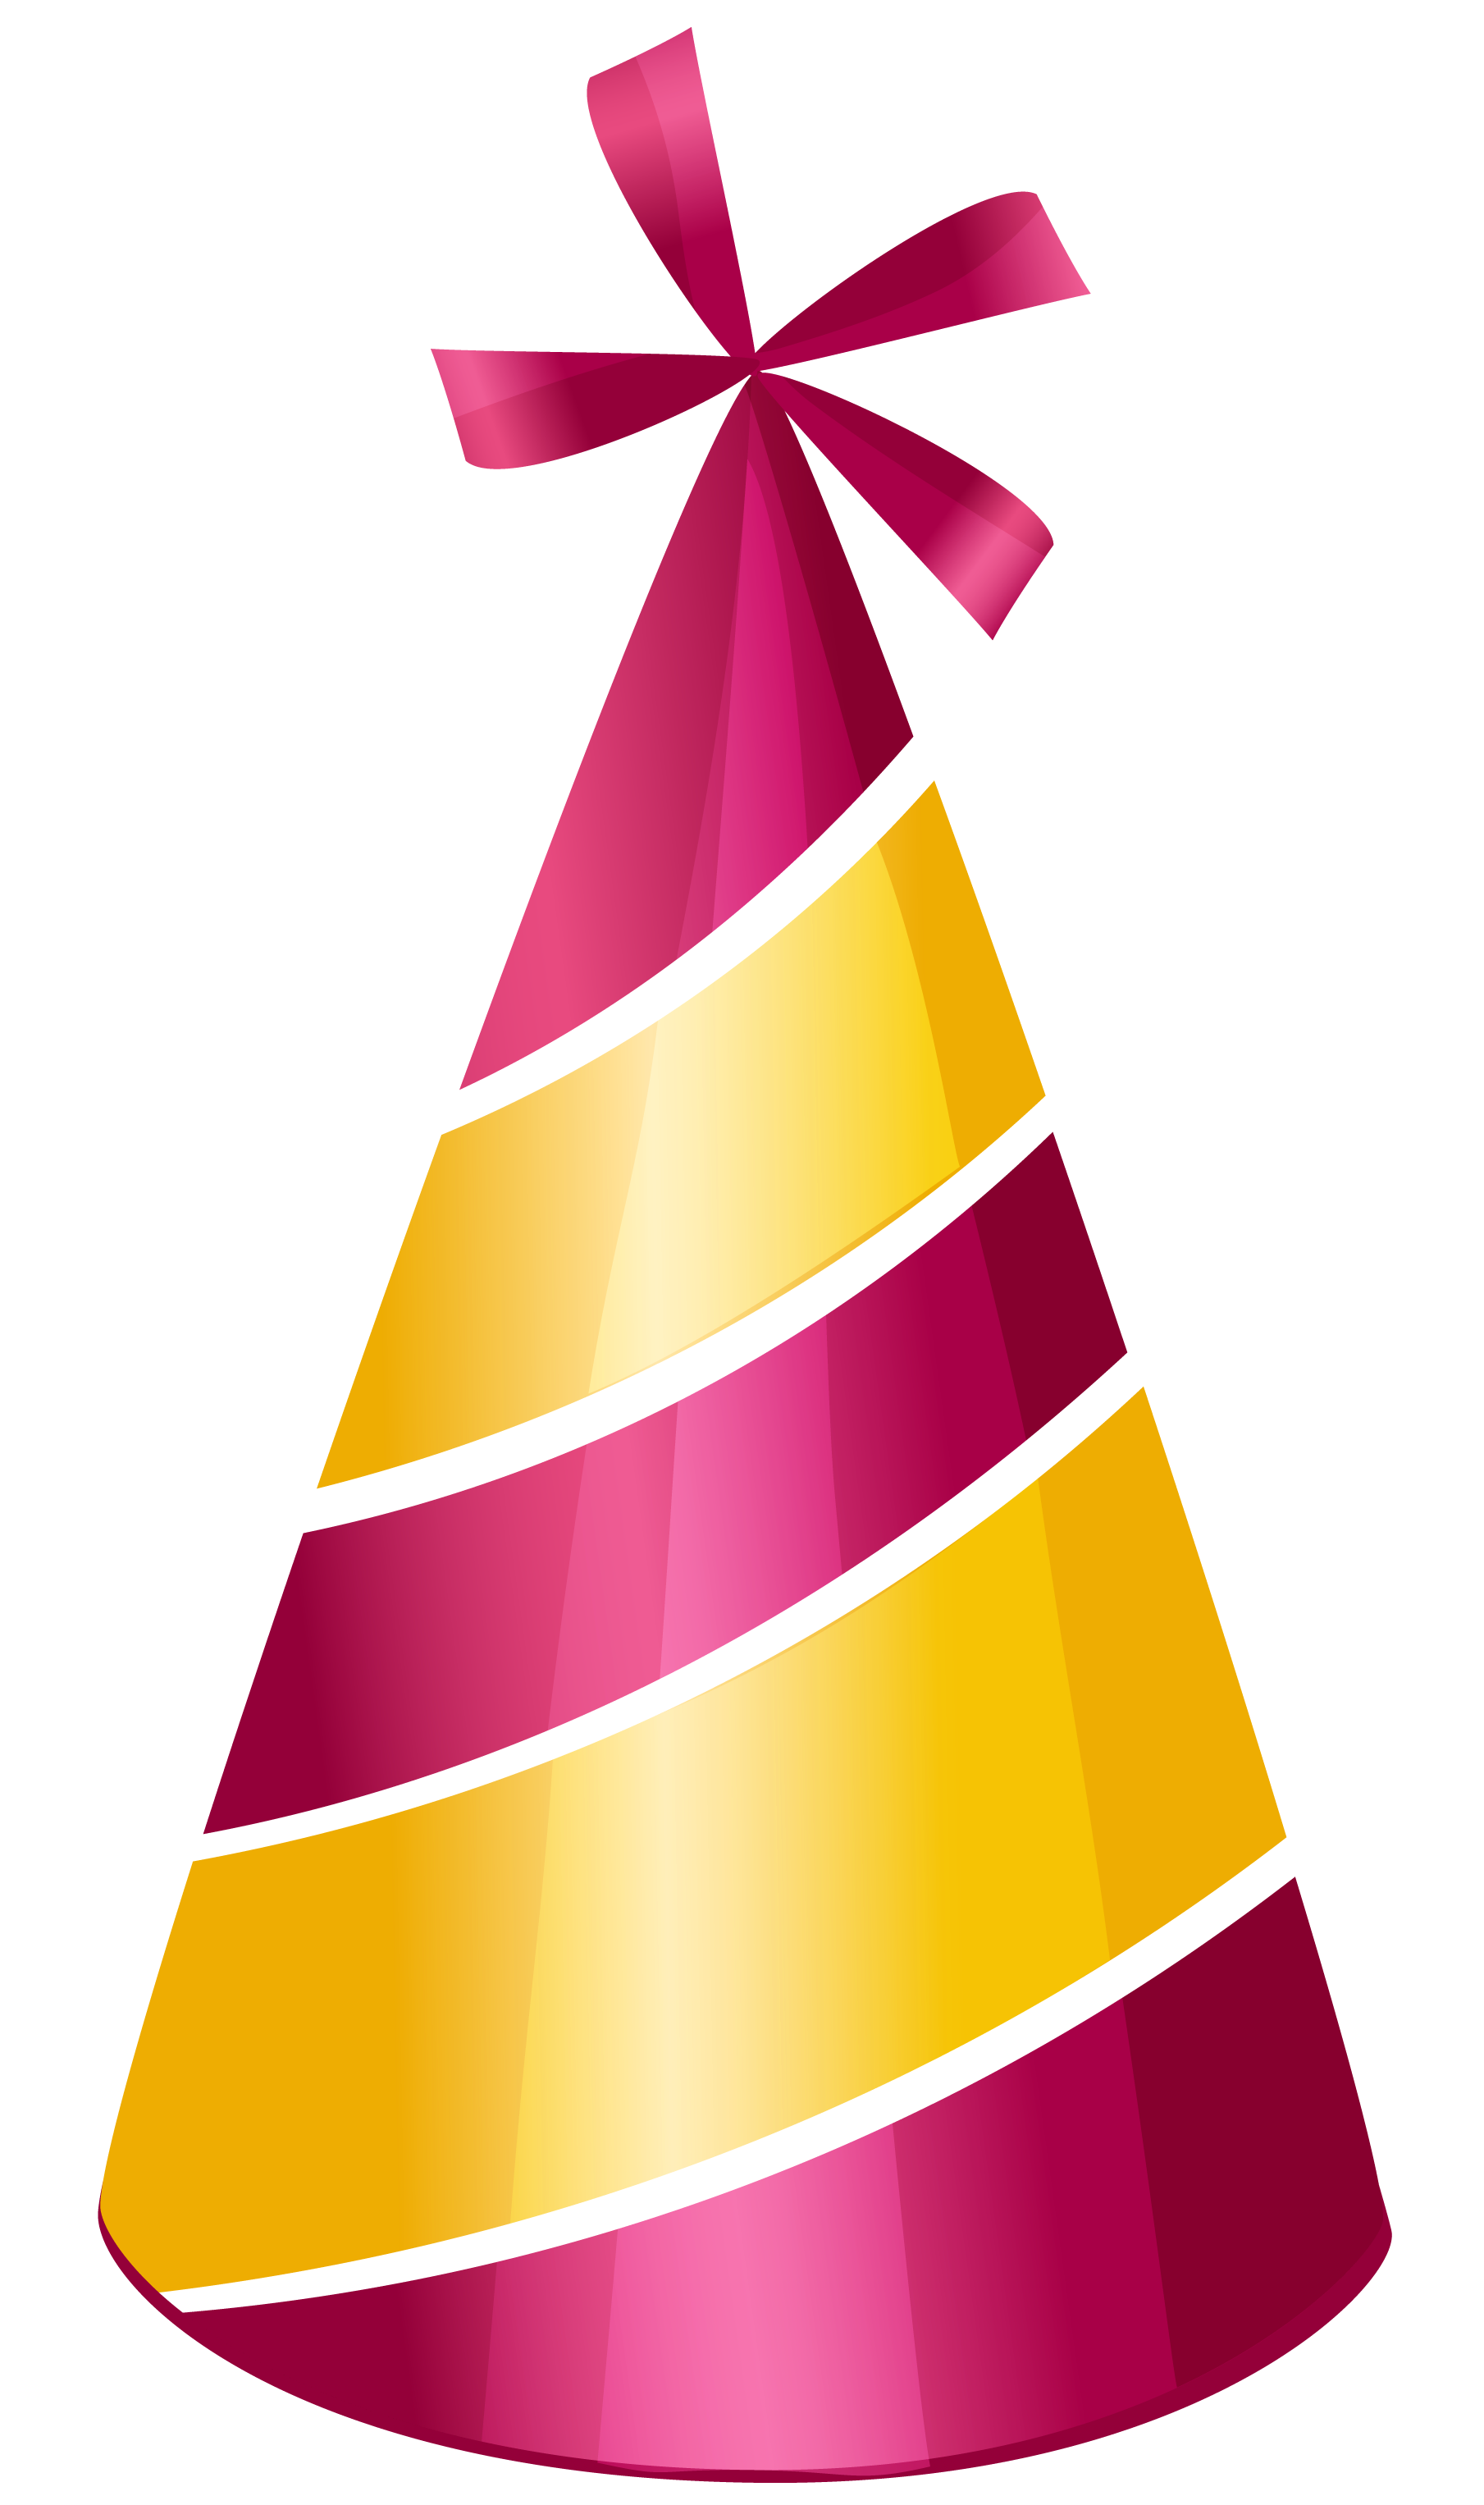 Birthday hat png transparent. Hats clipart bday